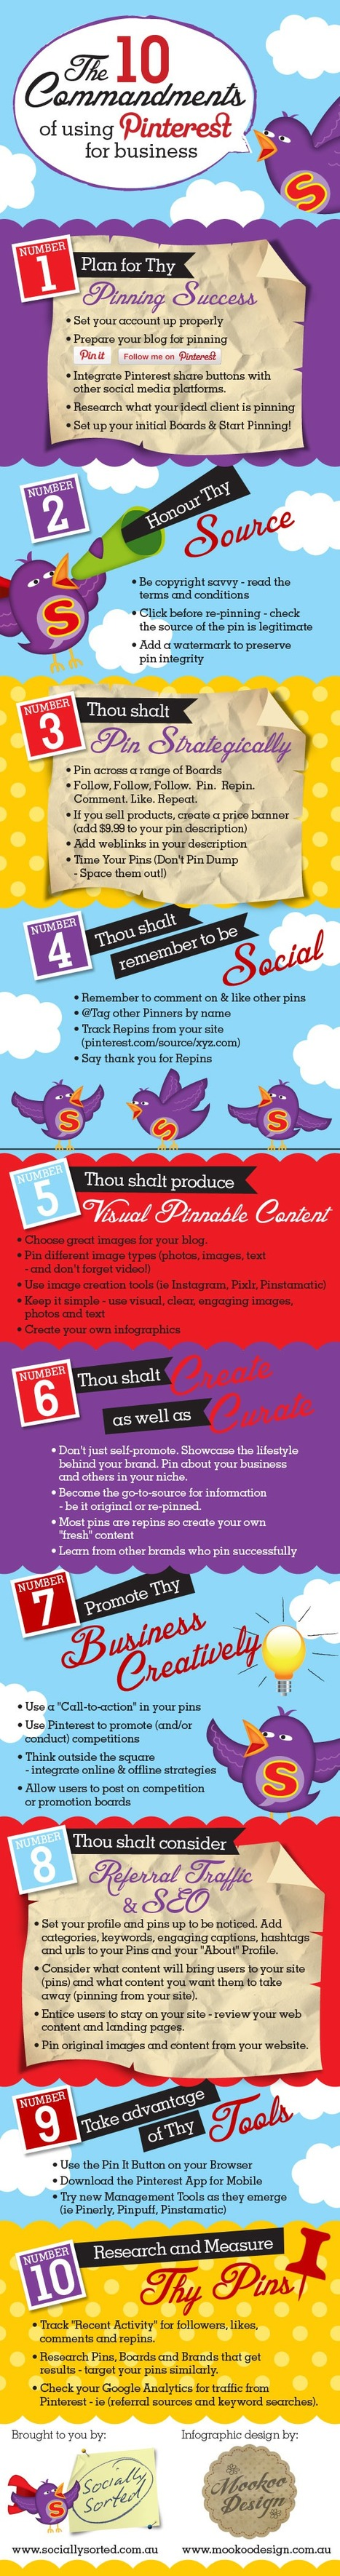 A Simple Cheat Sheet for Using Pinterest for Marketing [Infographic]   AtDotCom Social media   Scoop.it